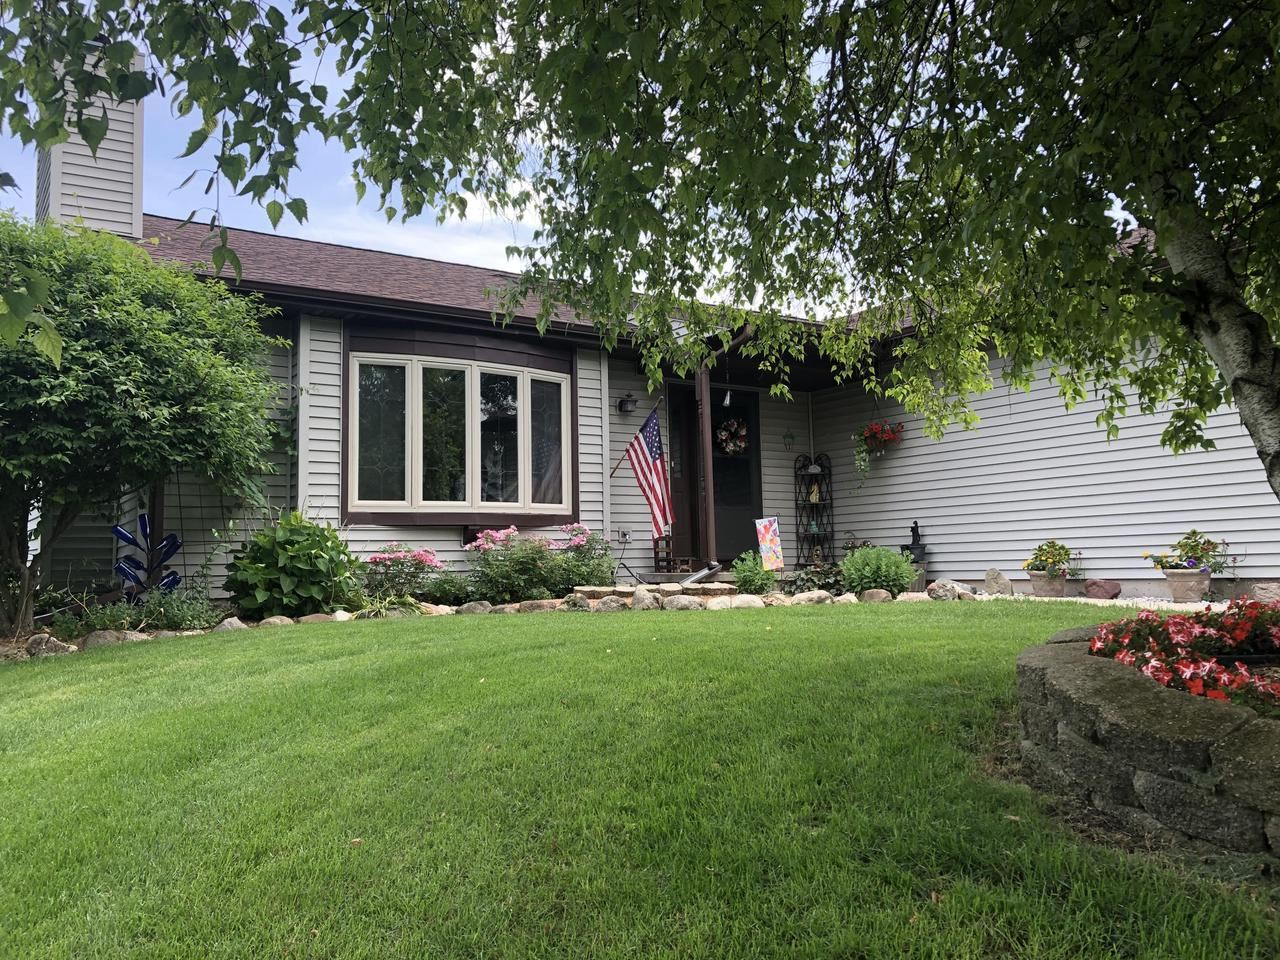 1013 Sycamore Tree Dr, Fond du Lac, WI 54935 - MLS#: 1696964